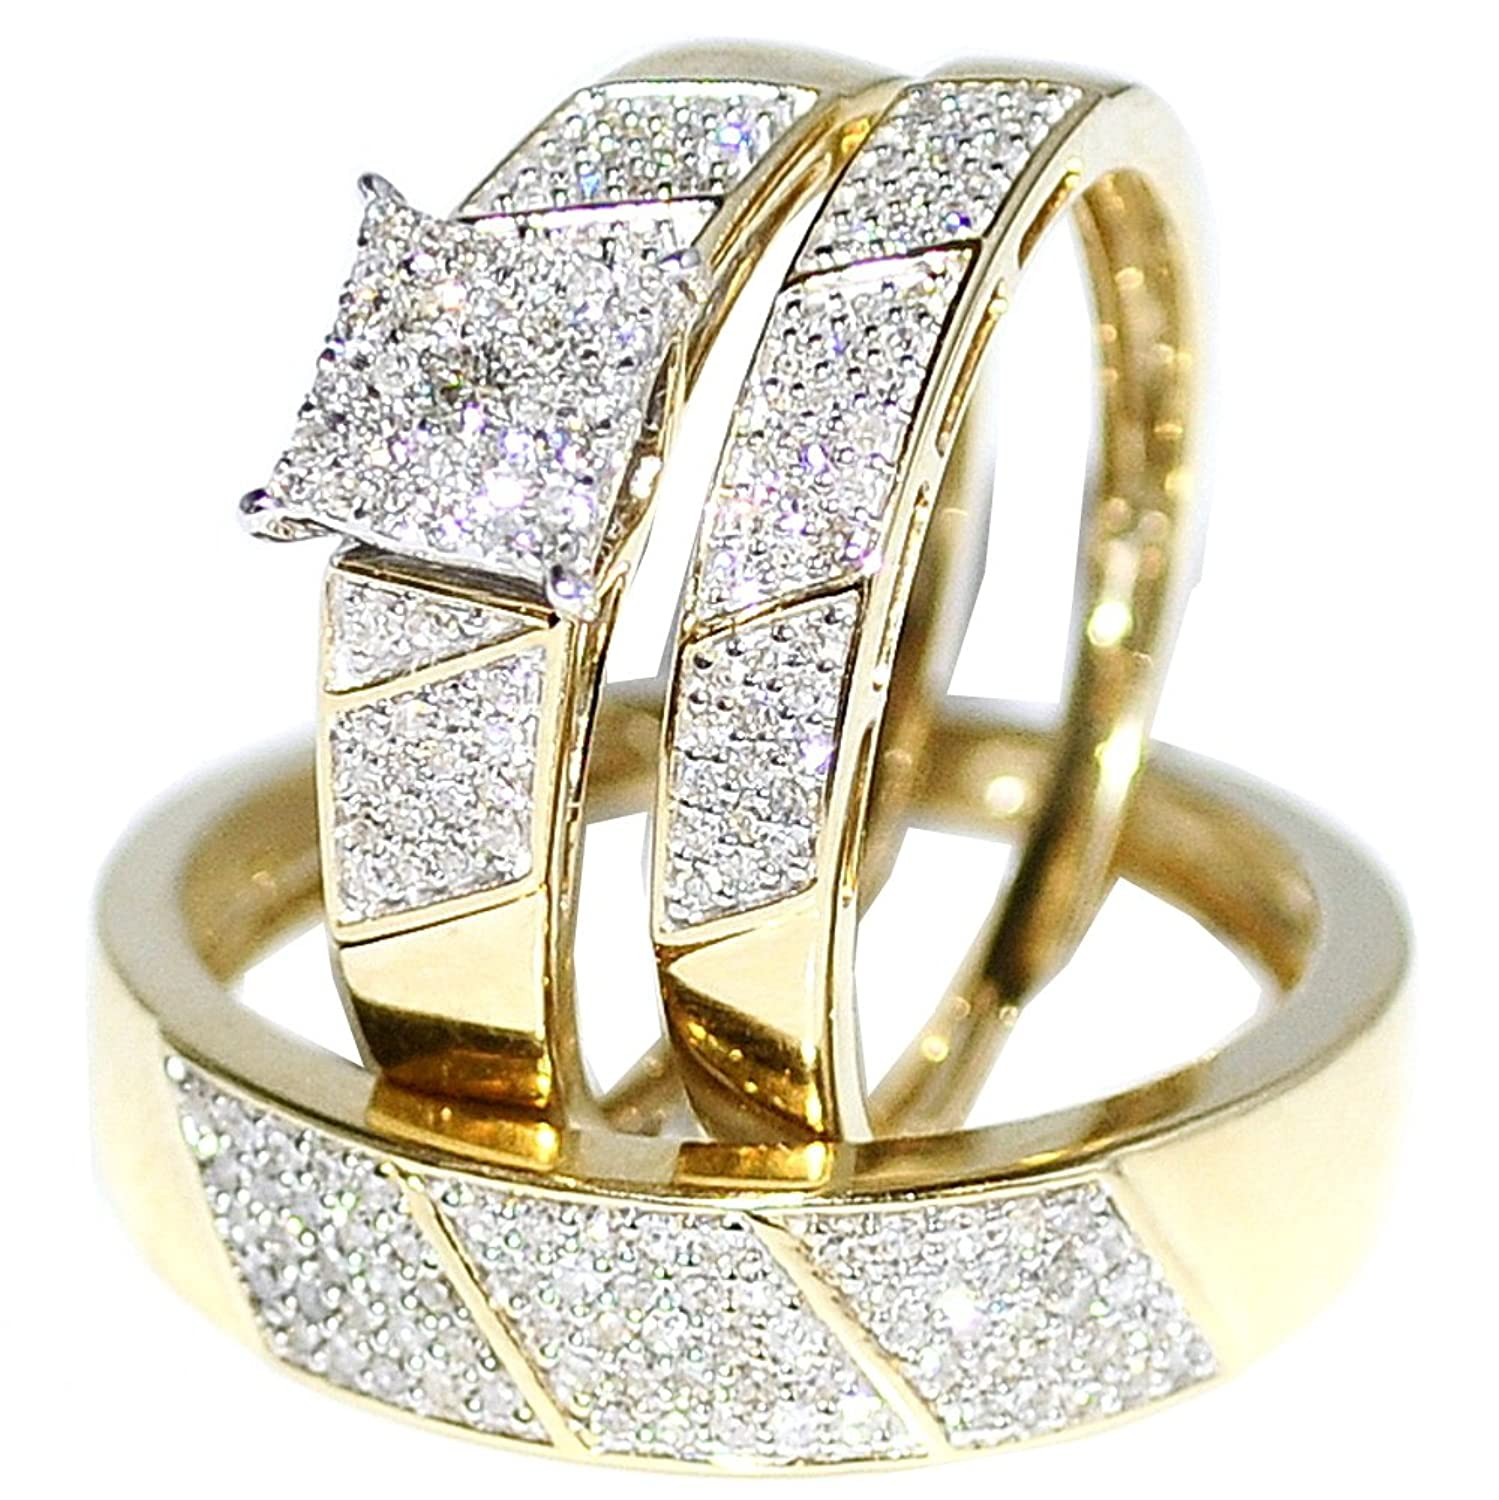 Amazon His Her Wedding Rings Set Trio Men Women 10k Yellow Gold Jewelry